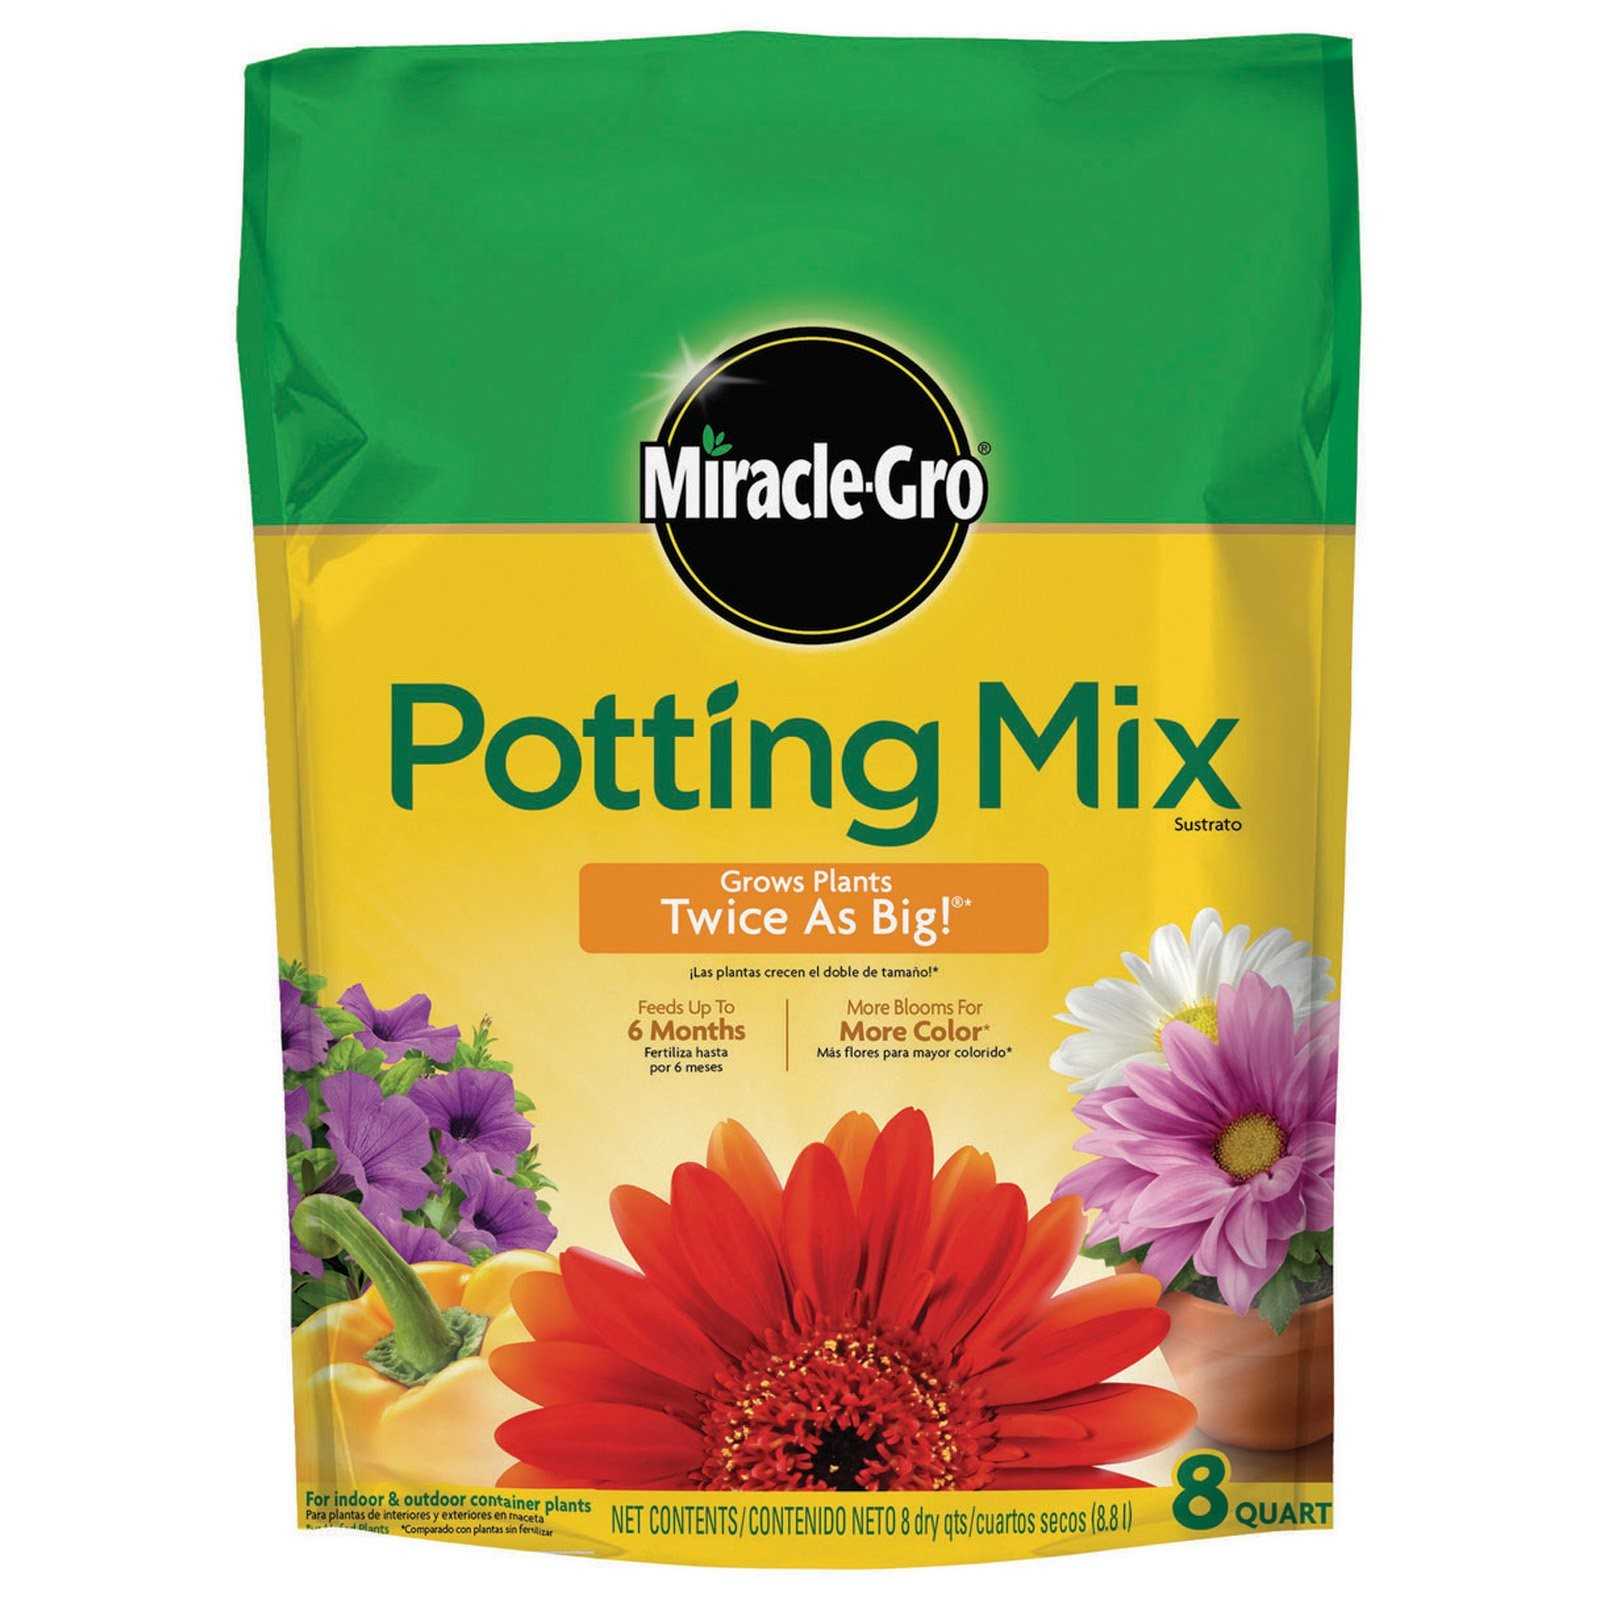 Miracle-Gro Potting Mix, 8 Quart